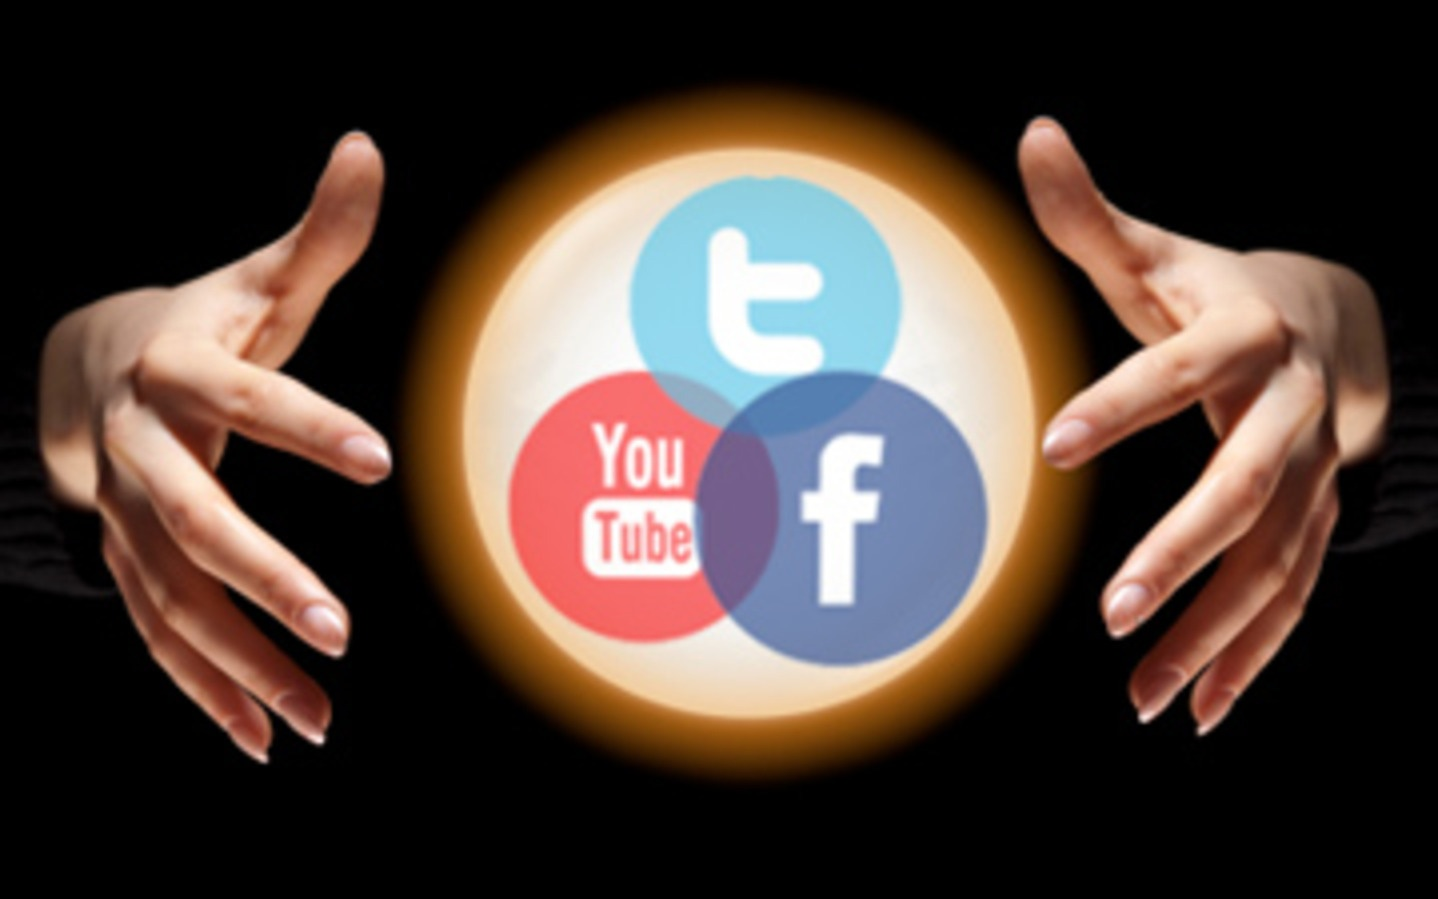 7-social-media-predictions-for-2012-4ed6bb68eb-1.jpg